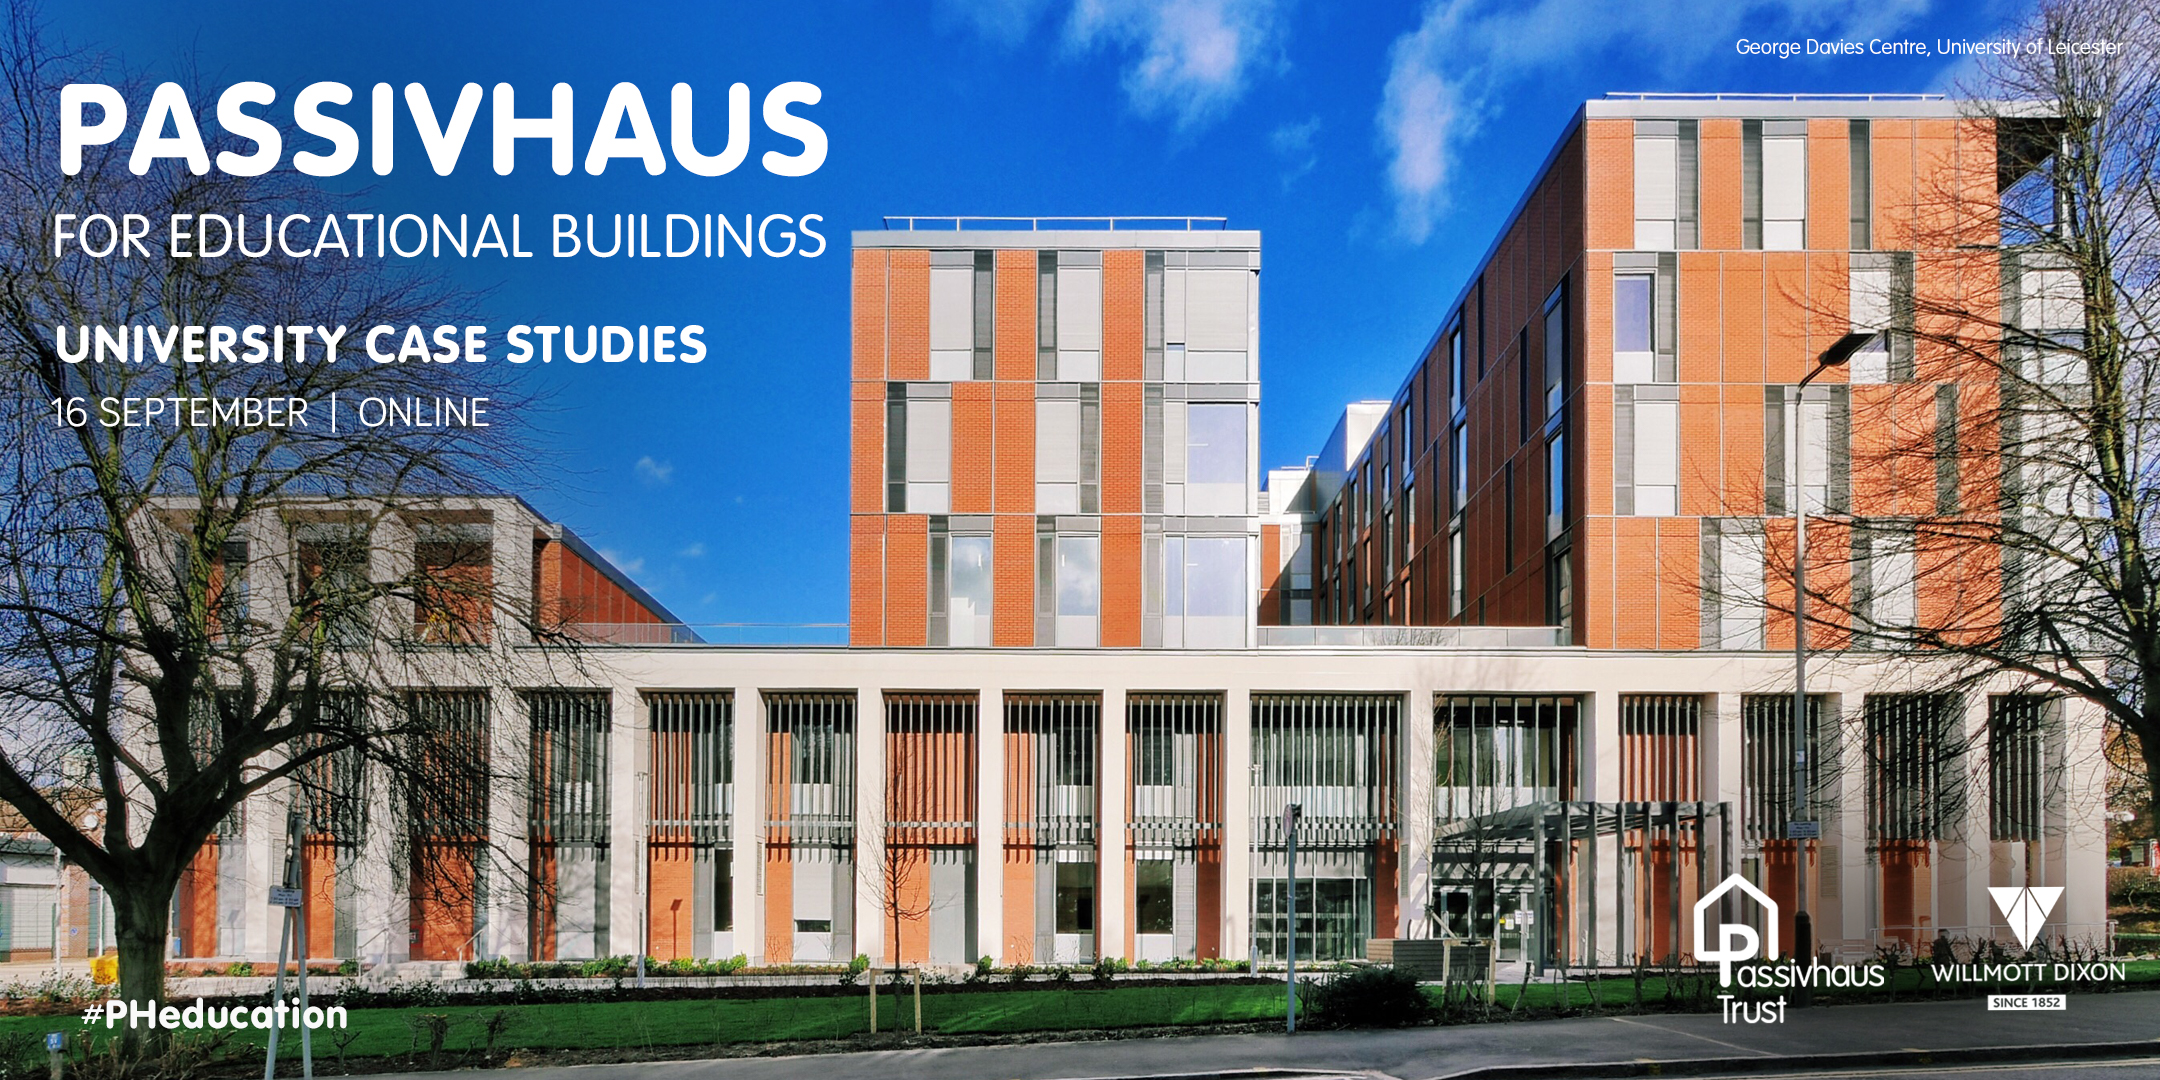 Passivhaus for Eduational Buildings: University case studies - 16 September 2020